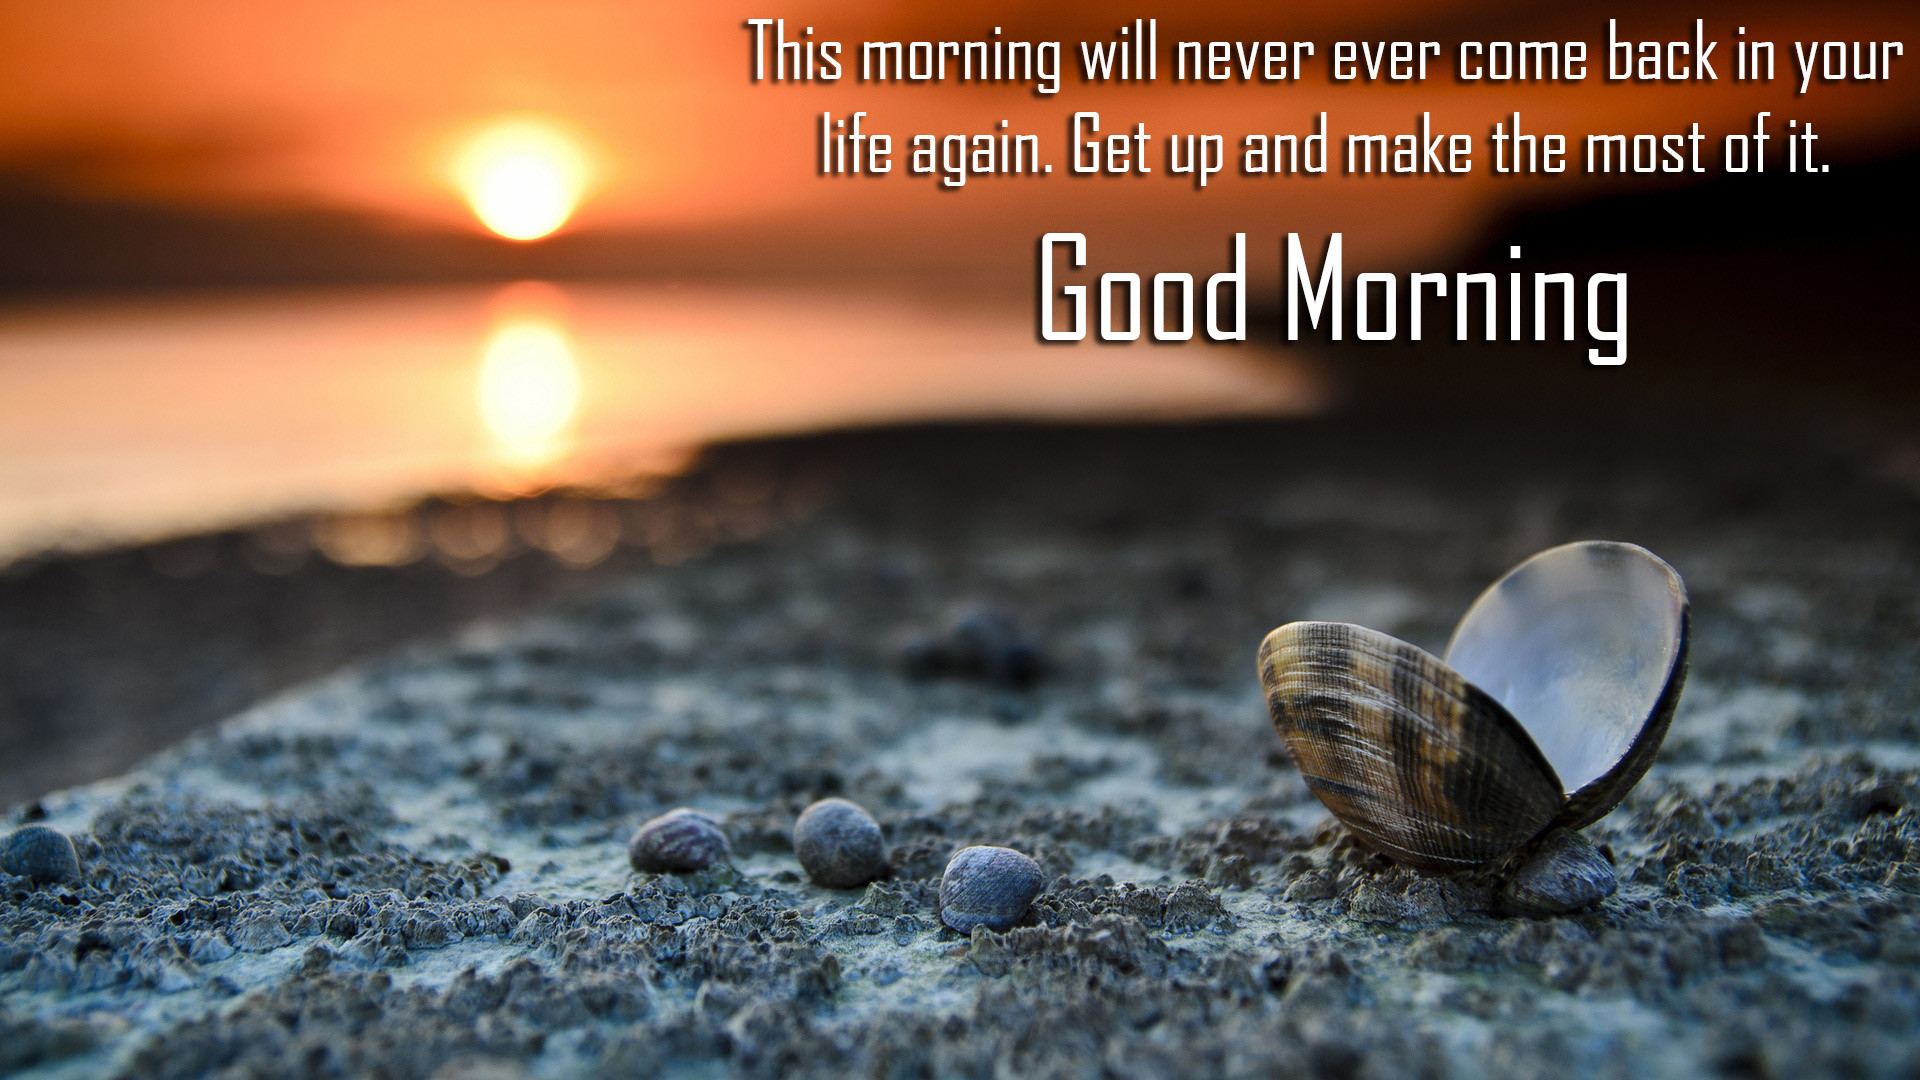 Res: 1920x1080, Do It Good Morning Message Wallpaper 26782